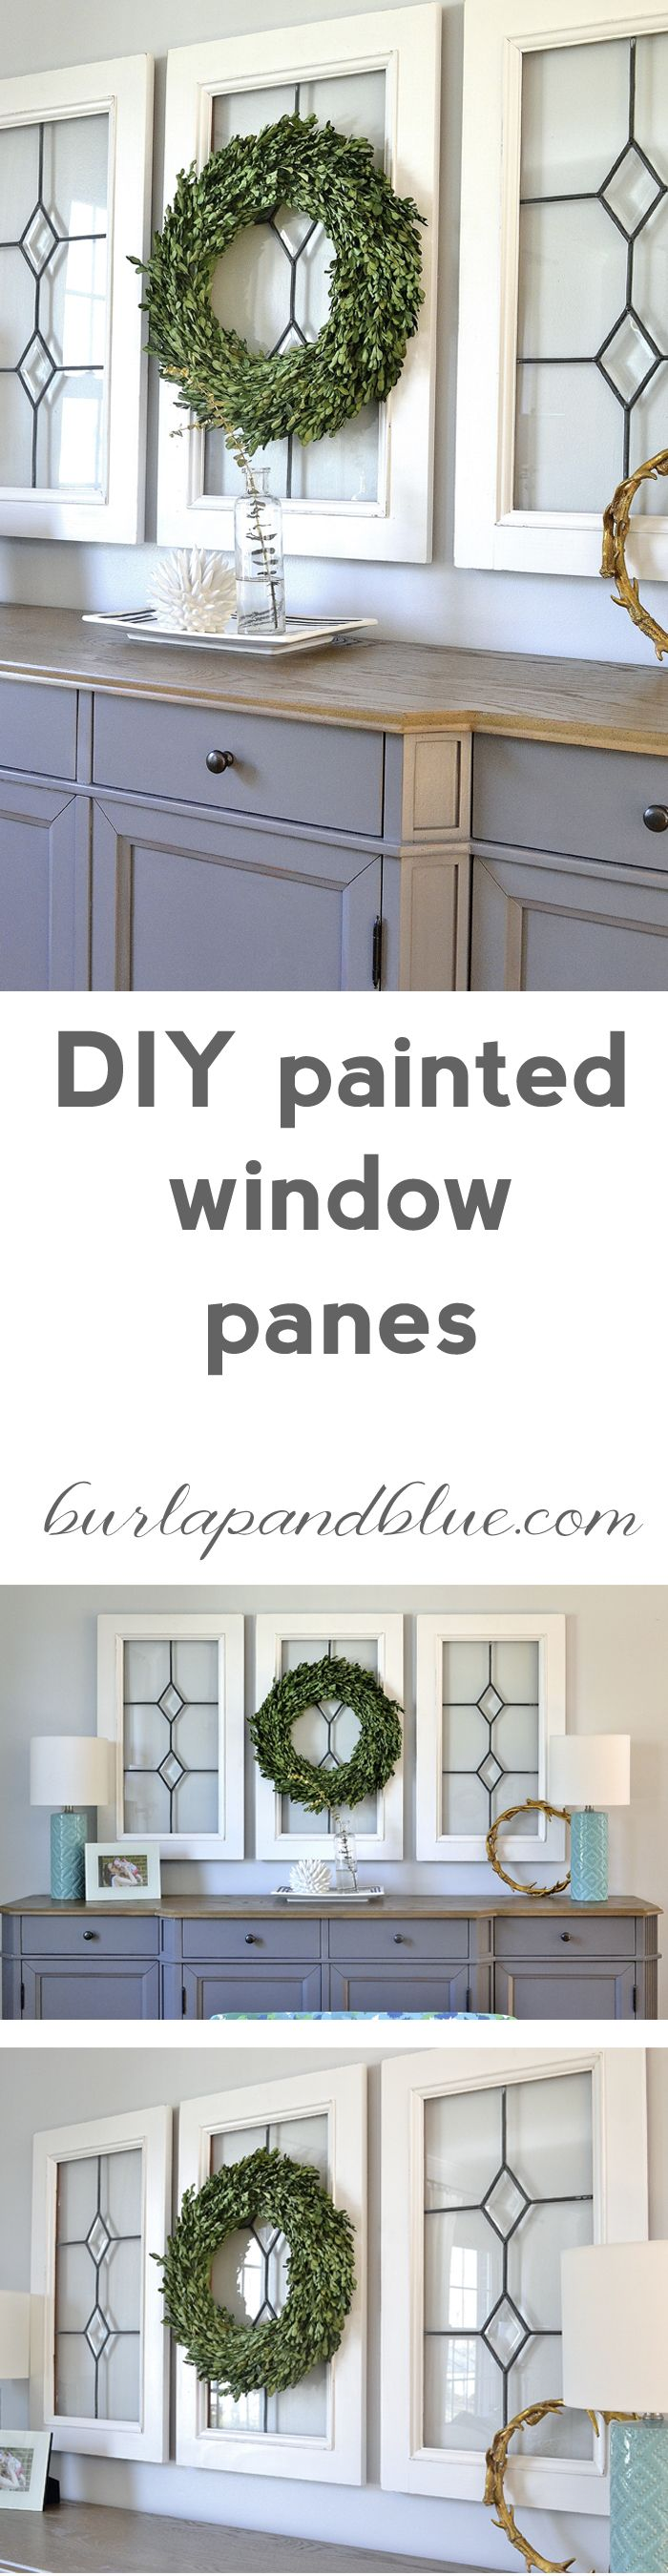 8 Pane Window Frame Best 25 Painted Window Panes Ideas On Pinterest Recycled